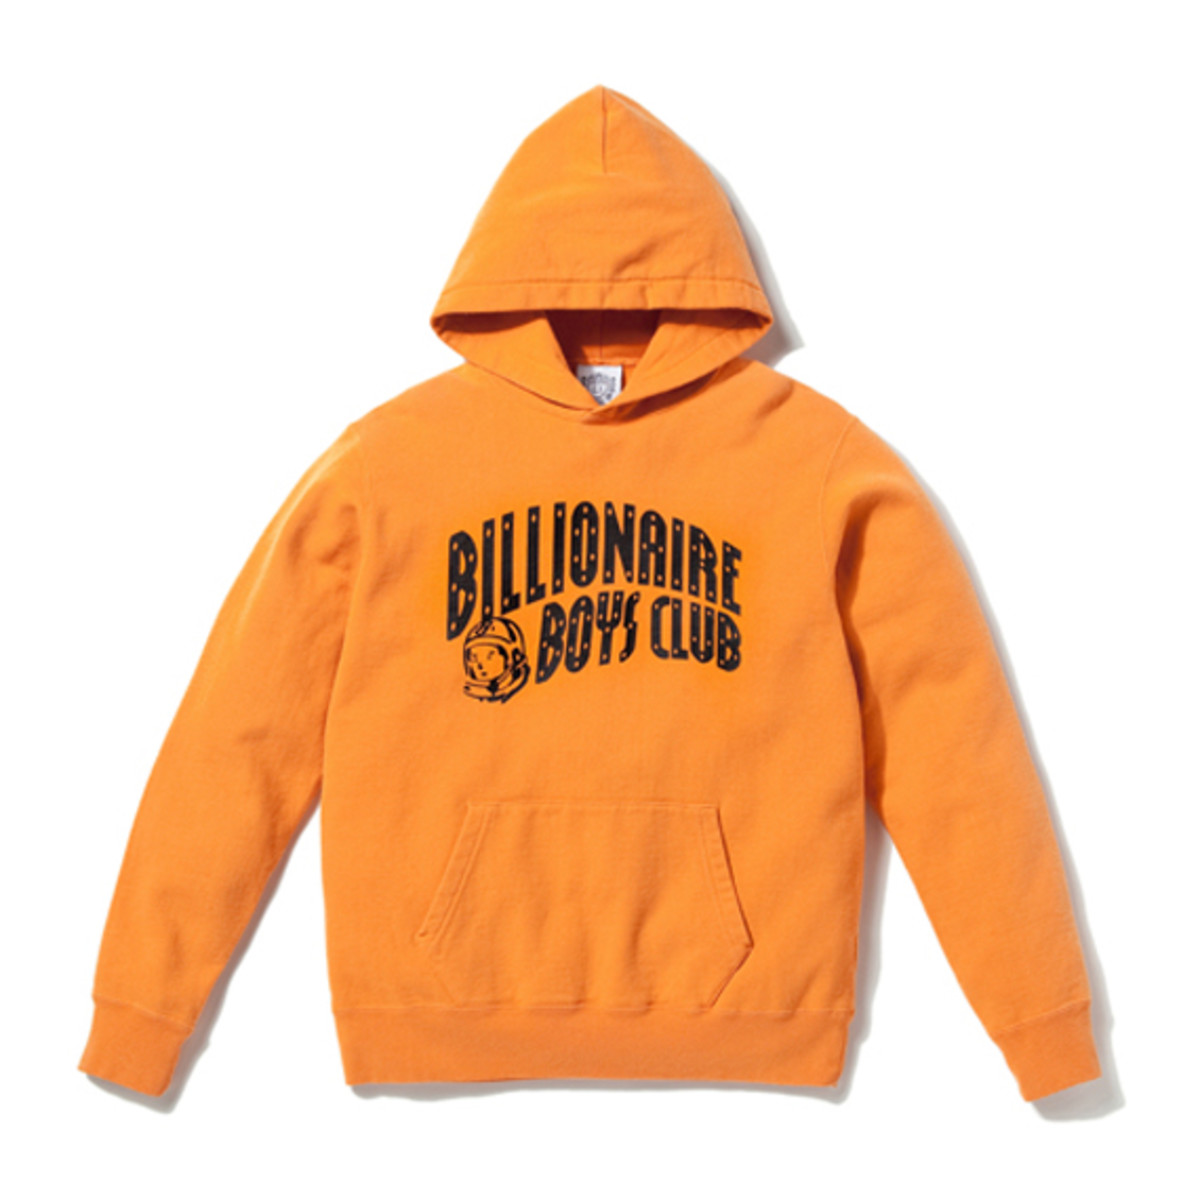 billionaire-boys-club-winter-2010-weekend-new-releases-10